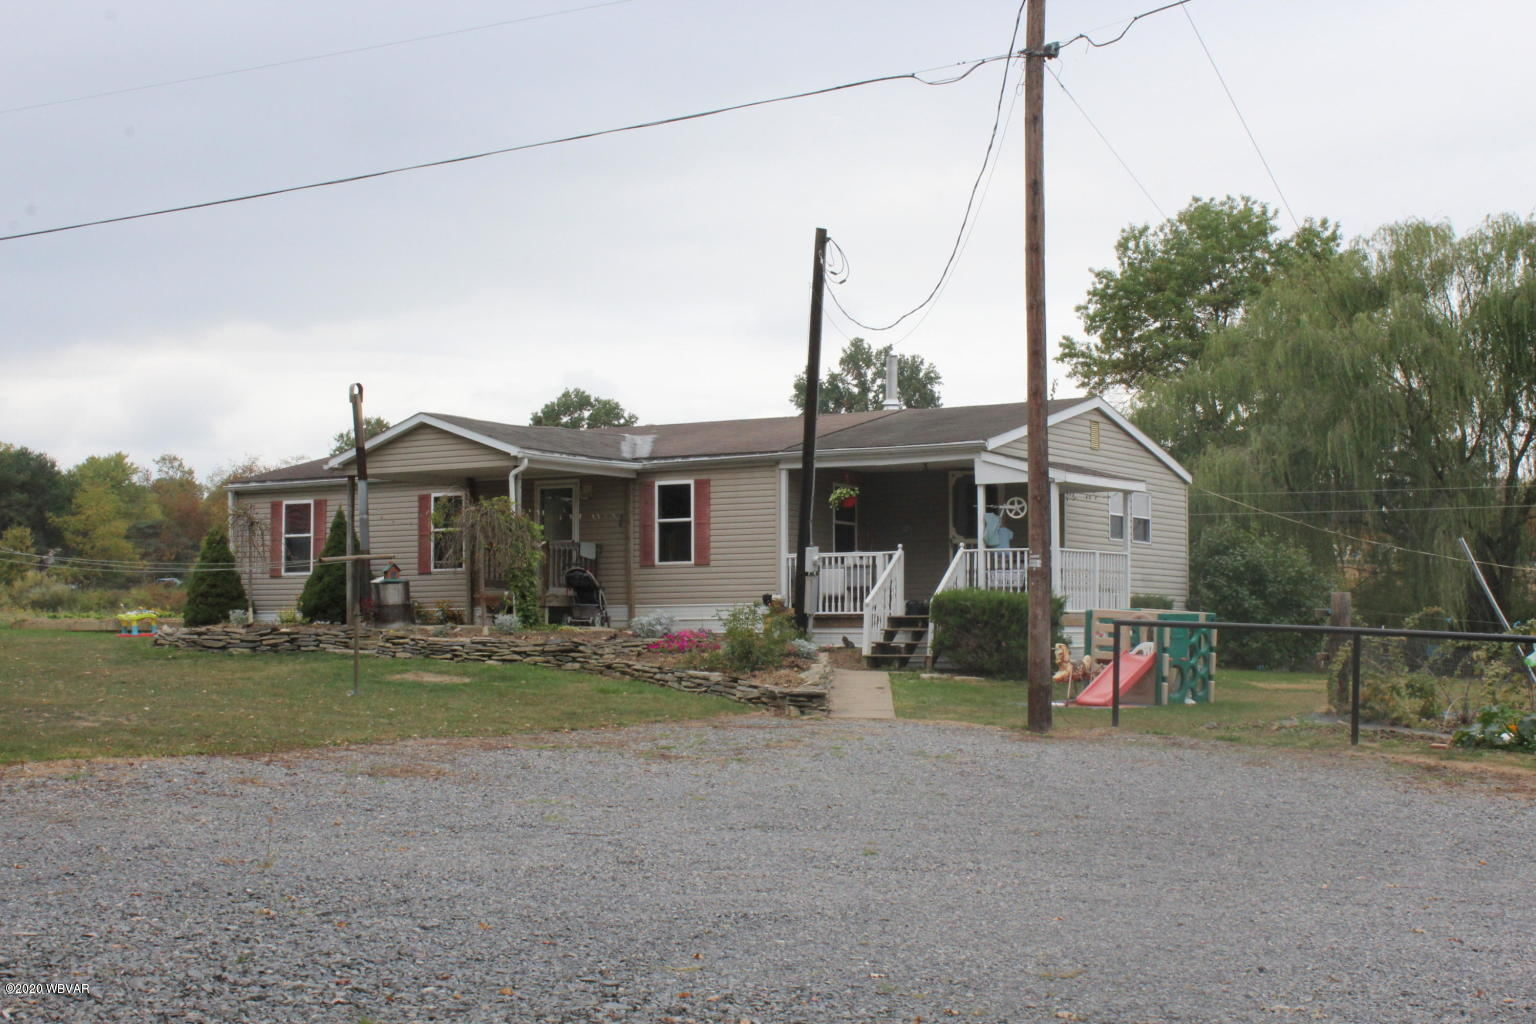 301 HICKORY GROVE ROAD, Watsontown, PA 17777, 3 Bedrooms Bedrooms, ,2 BathroomsBathrooms,Farm,For sale,HICKORY GROVE,WB-91190